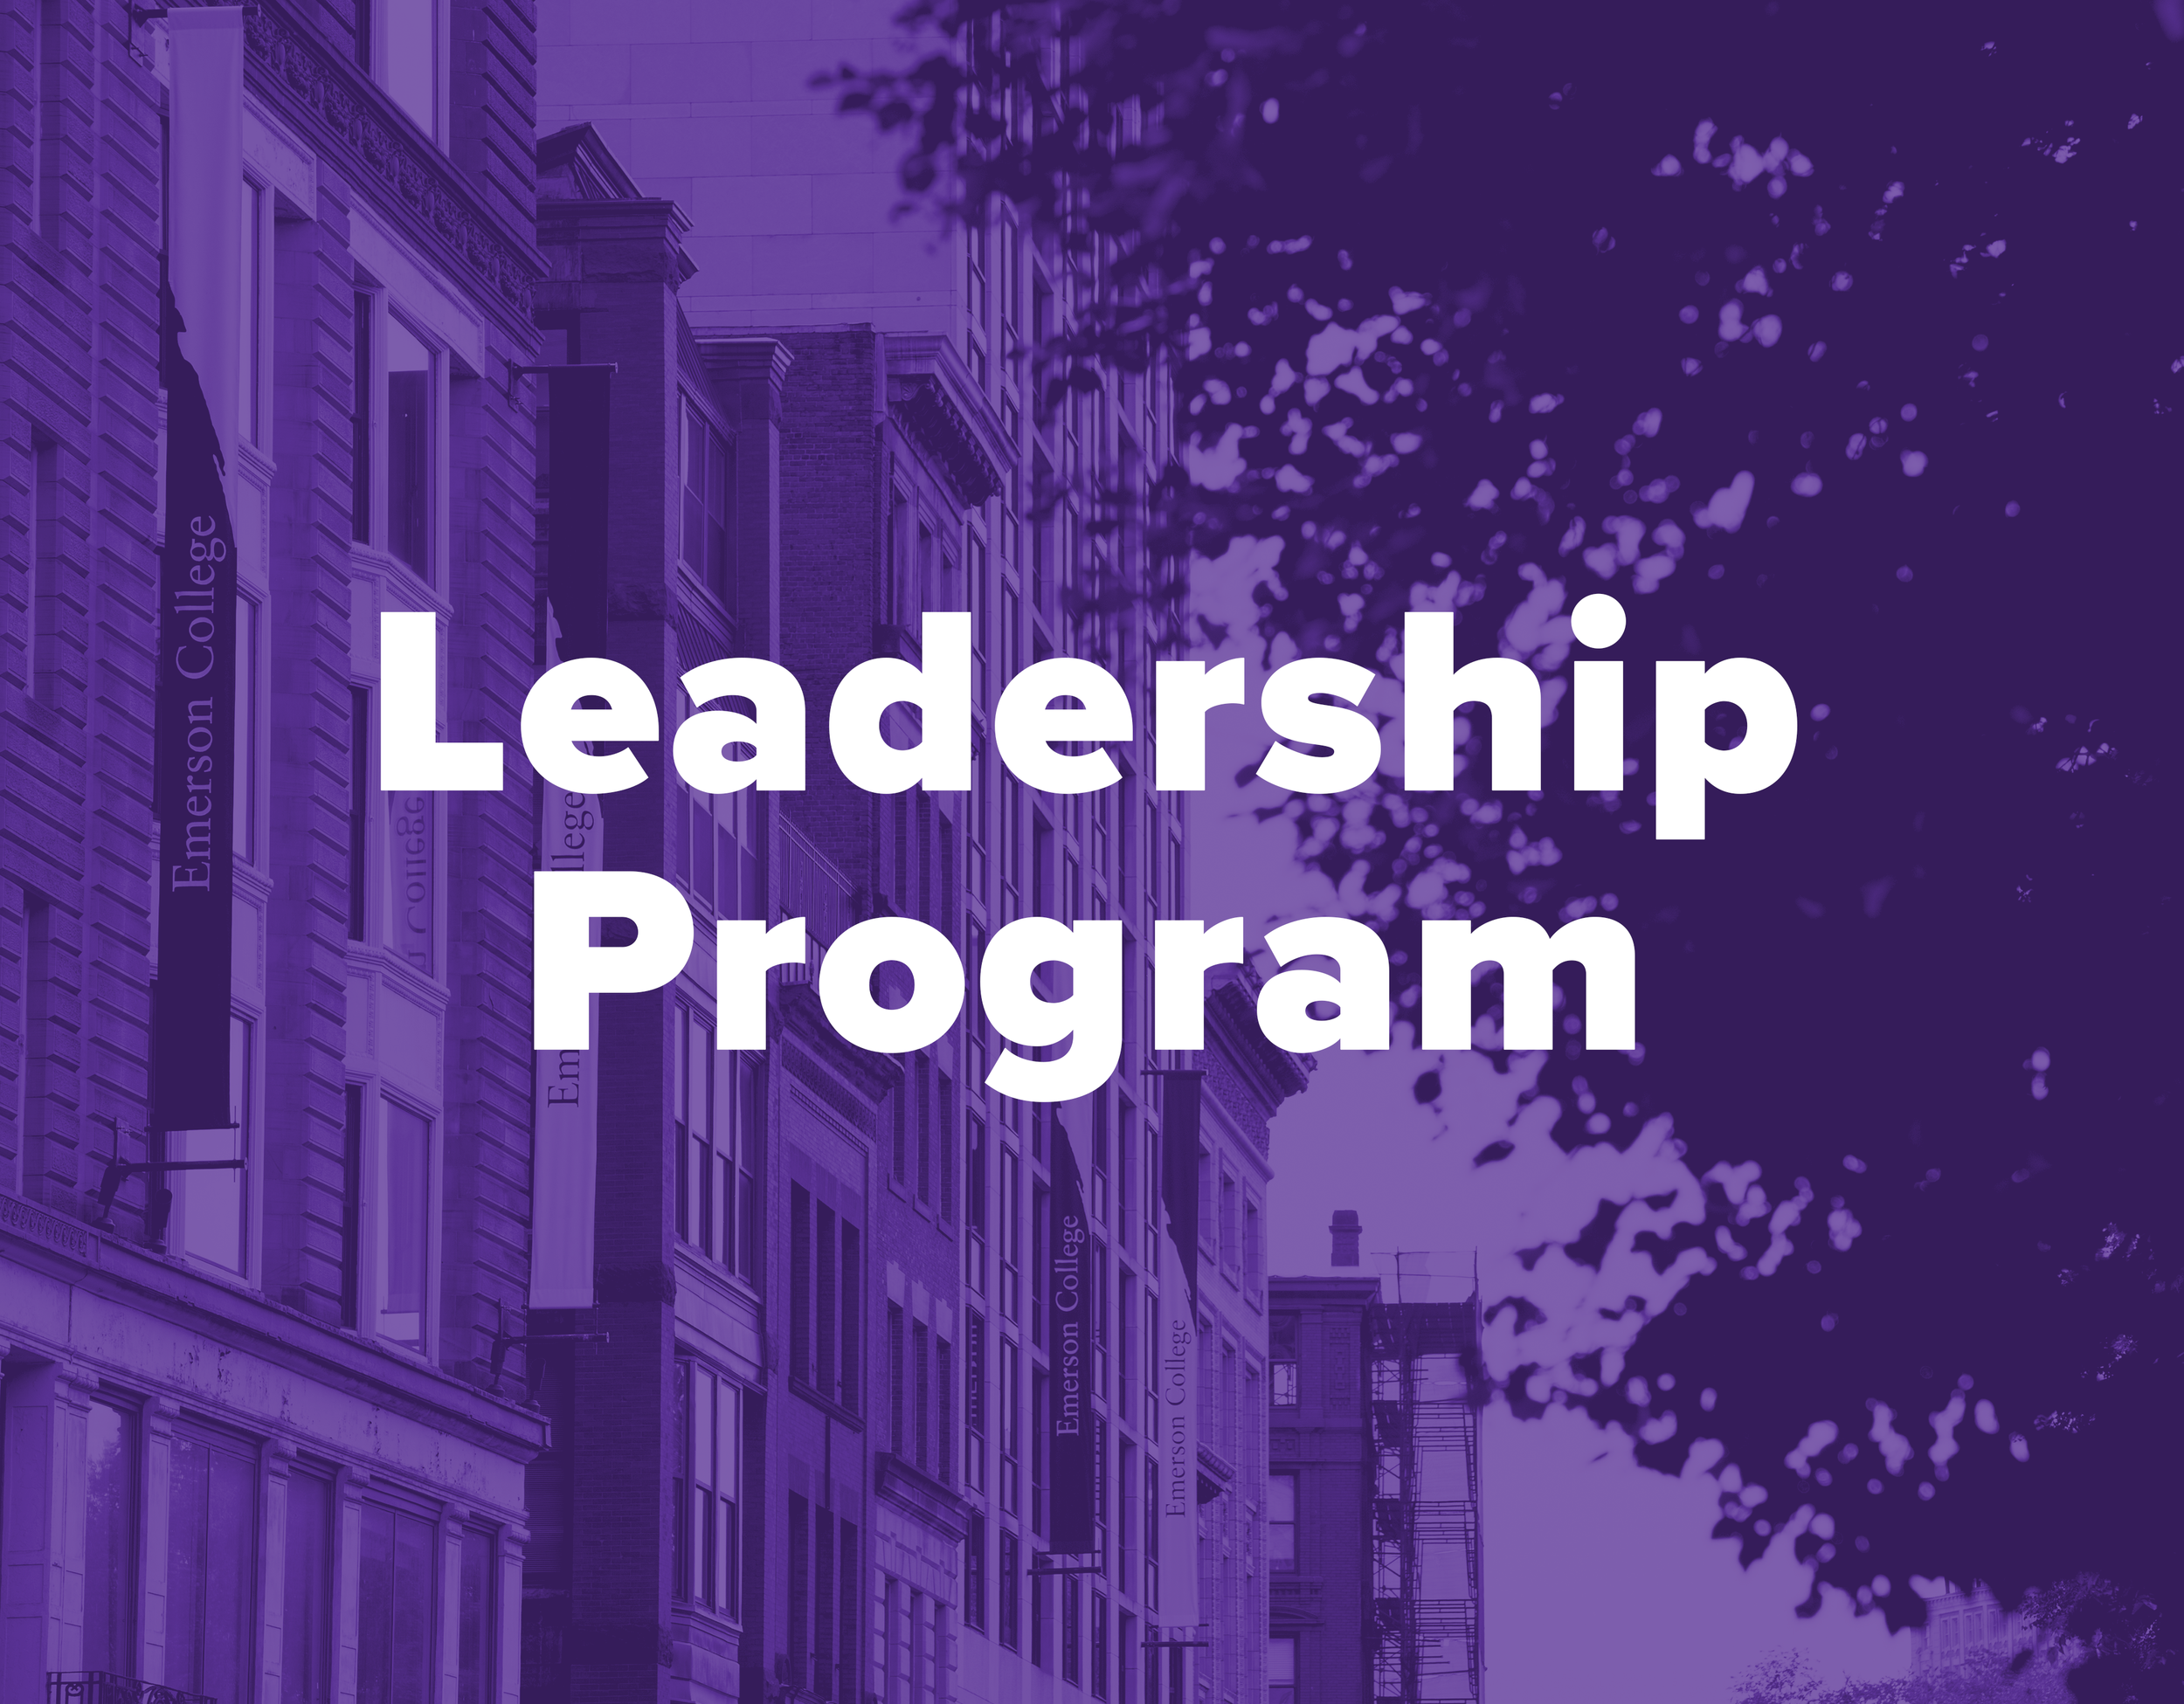 Student government Leadership program - Designed to build, develop, and enhance leadership skills to prepare students for representative leadership in student government, class councils, and beyond.